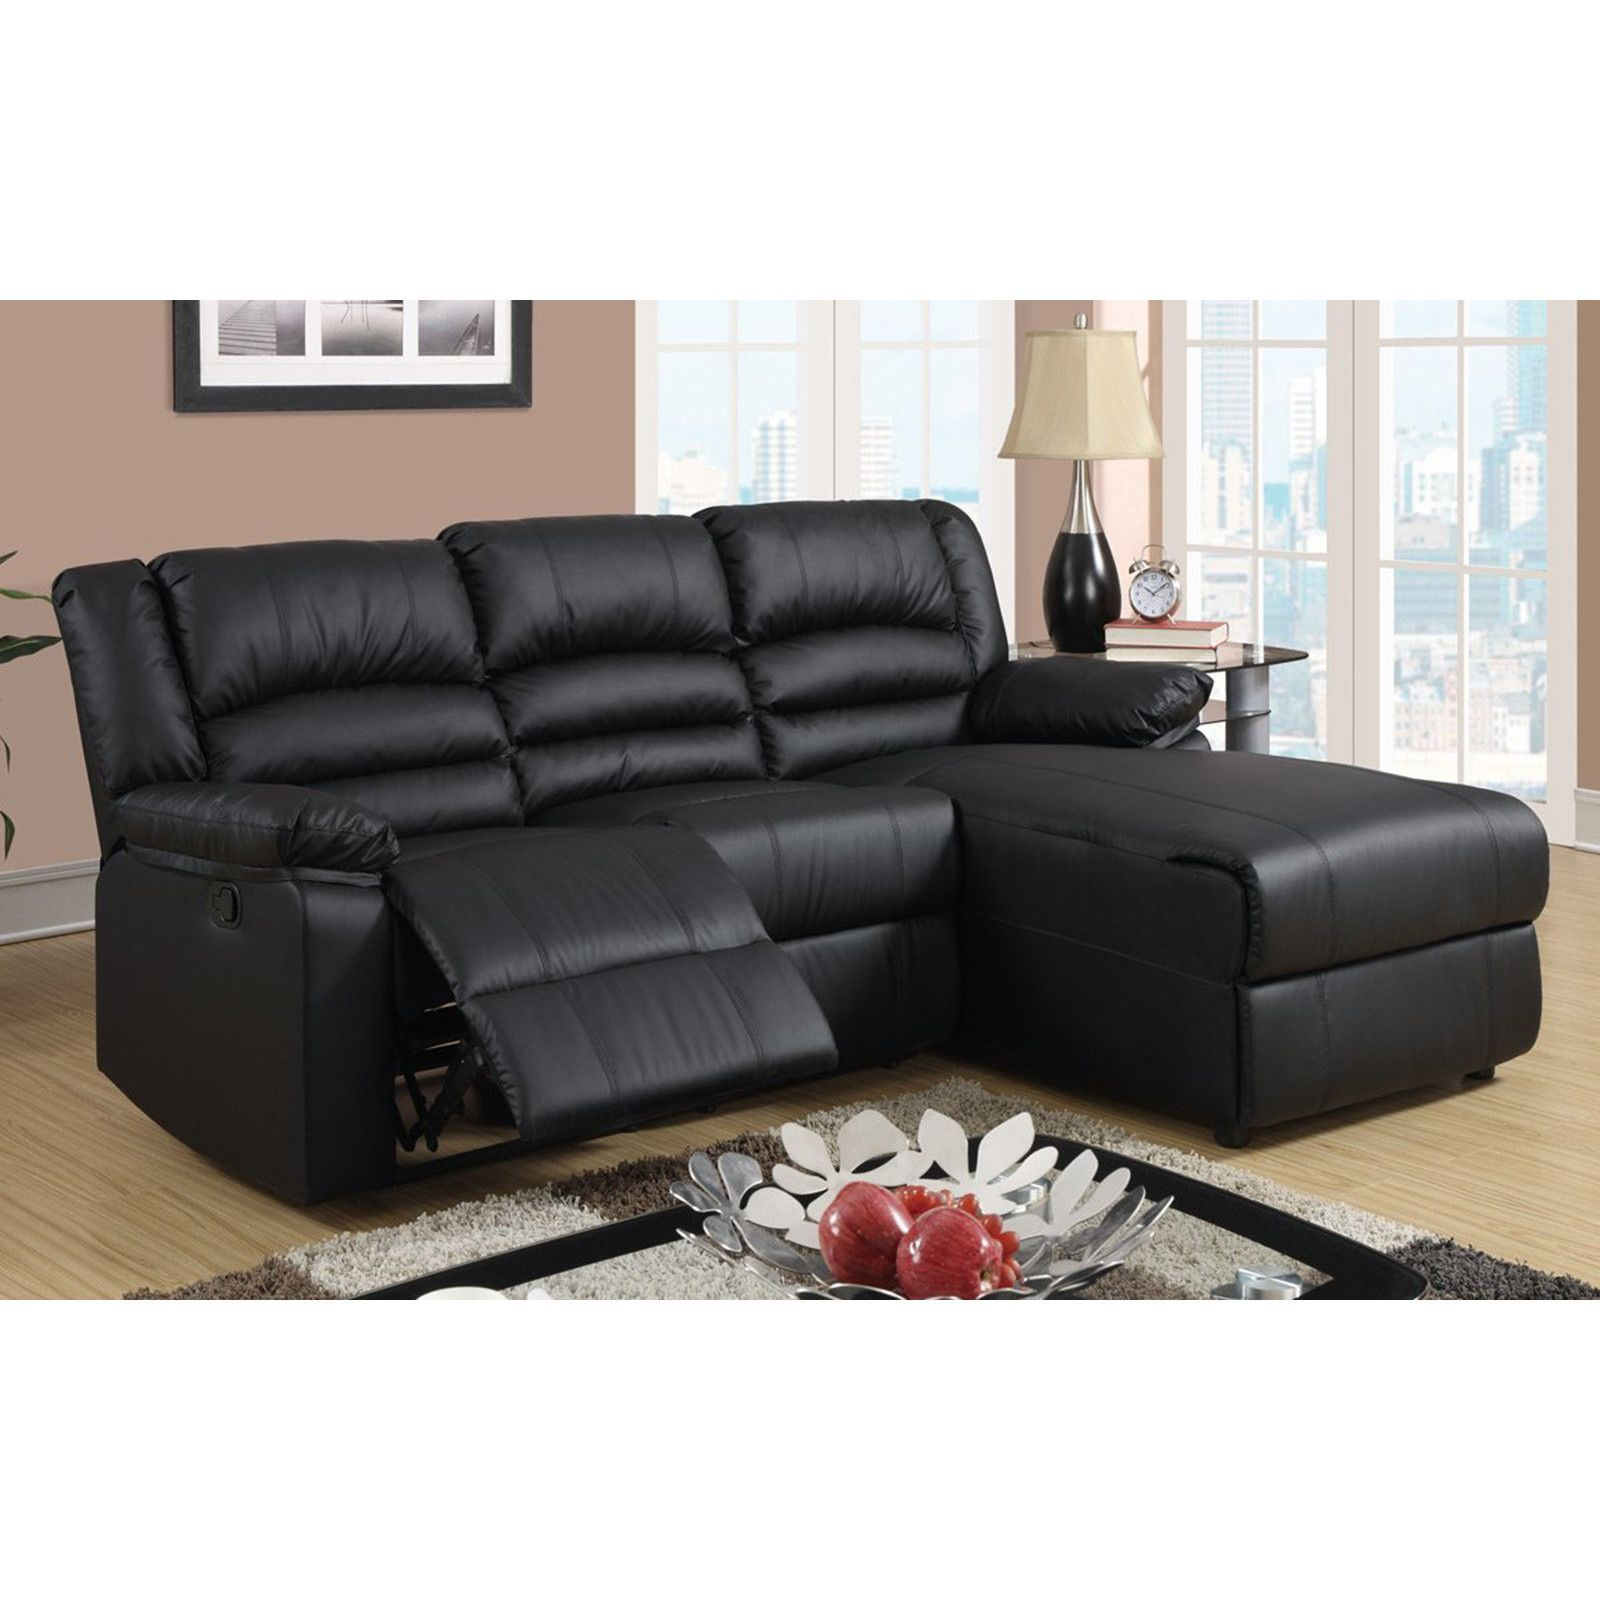 chaise recliner sofa small corner units madison modern space sectional reclining with